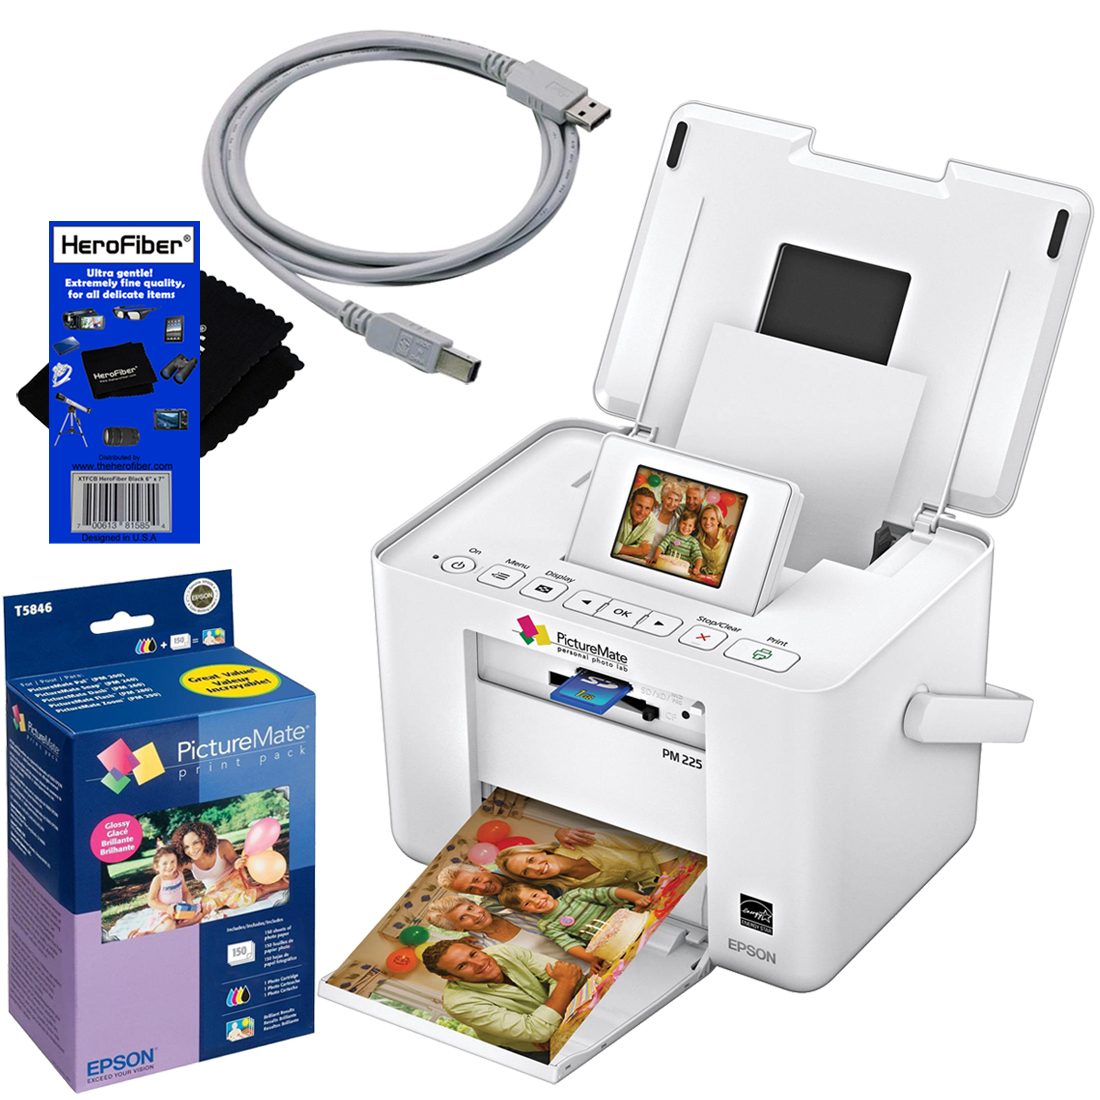 Epson PM225 PictureMate Charm Compact Photo Inkjet Printe...